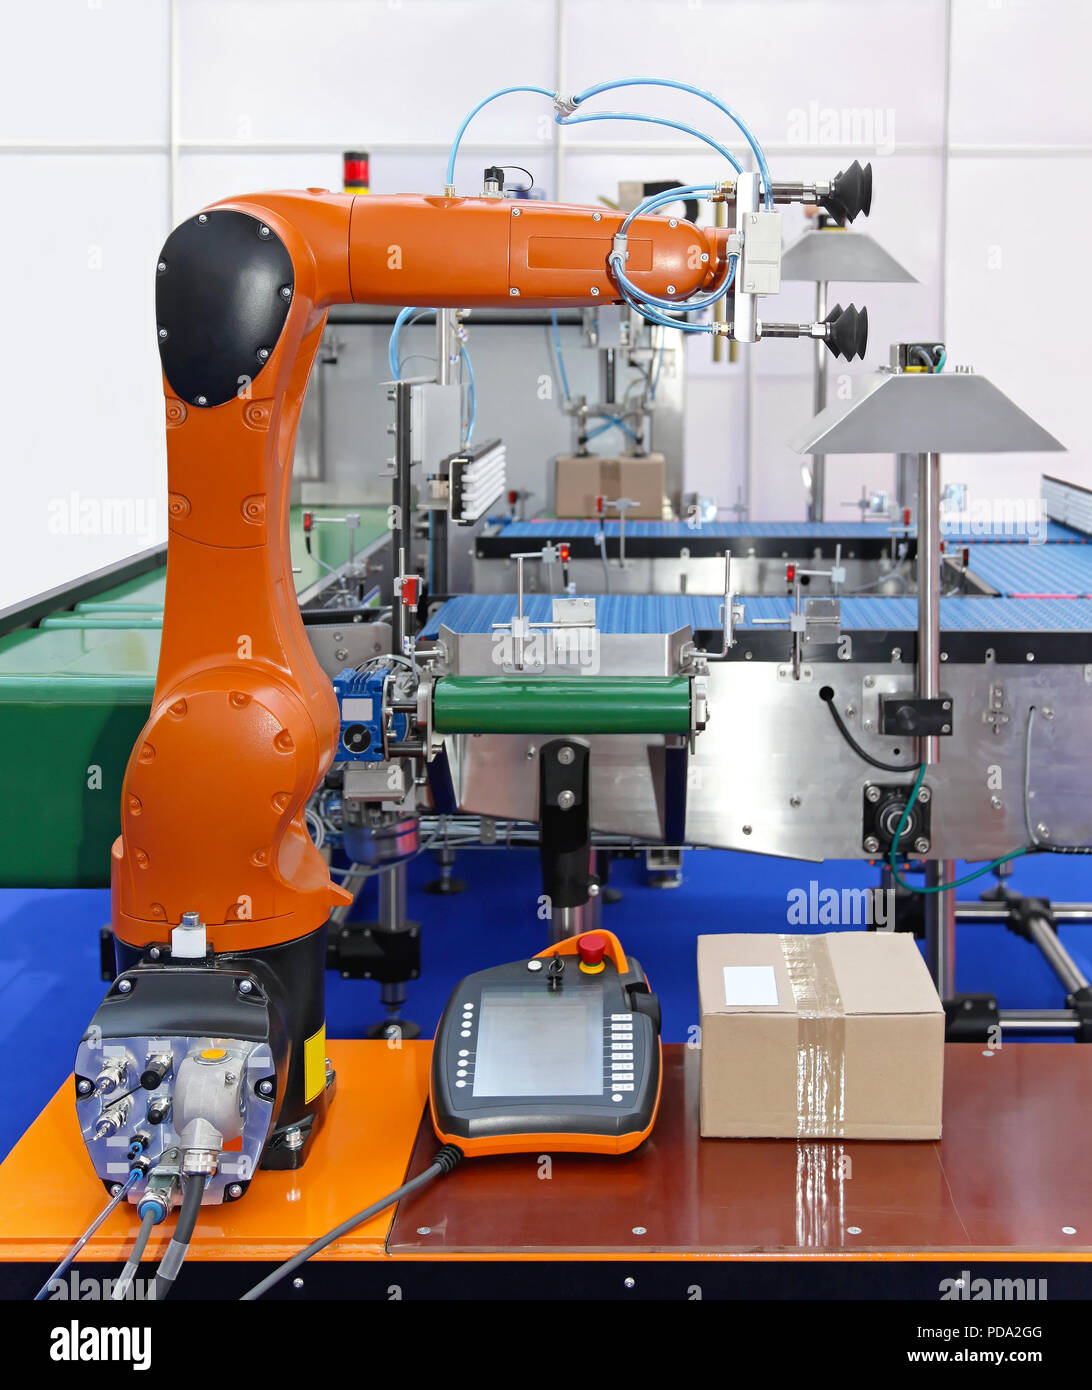 Articulated robot at packaging line in factory - Stock Image